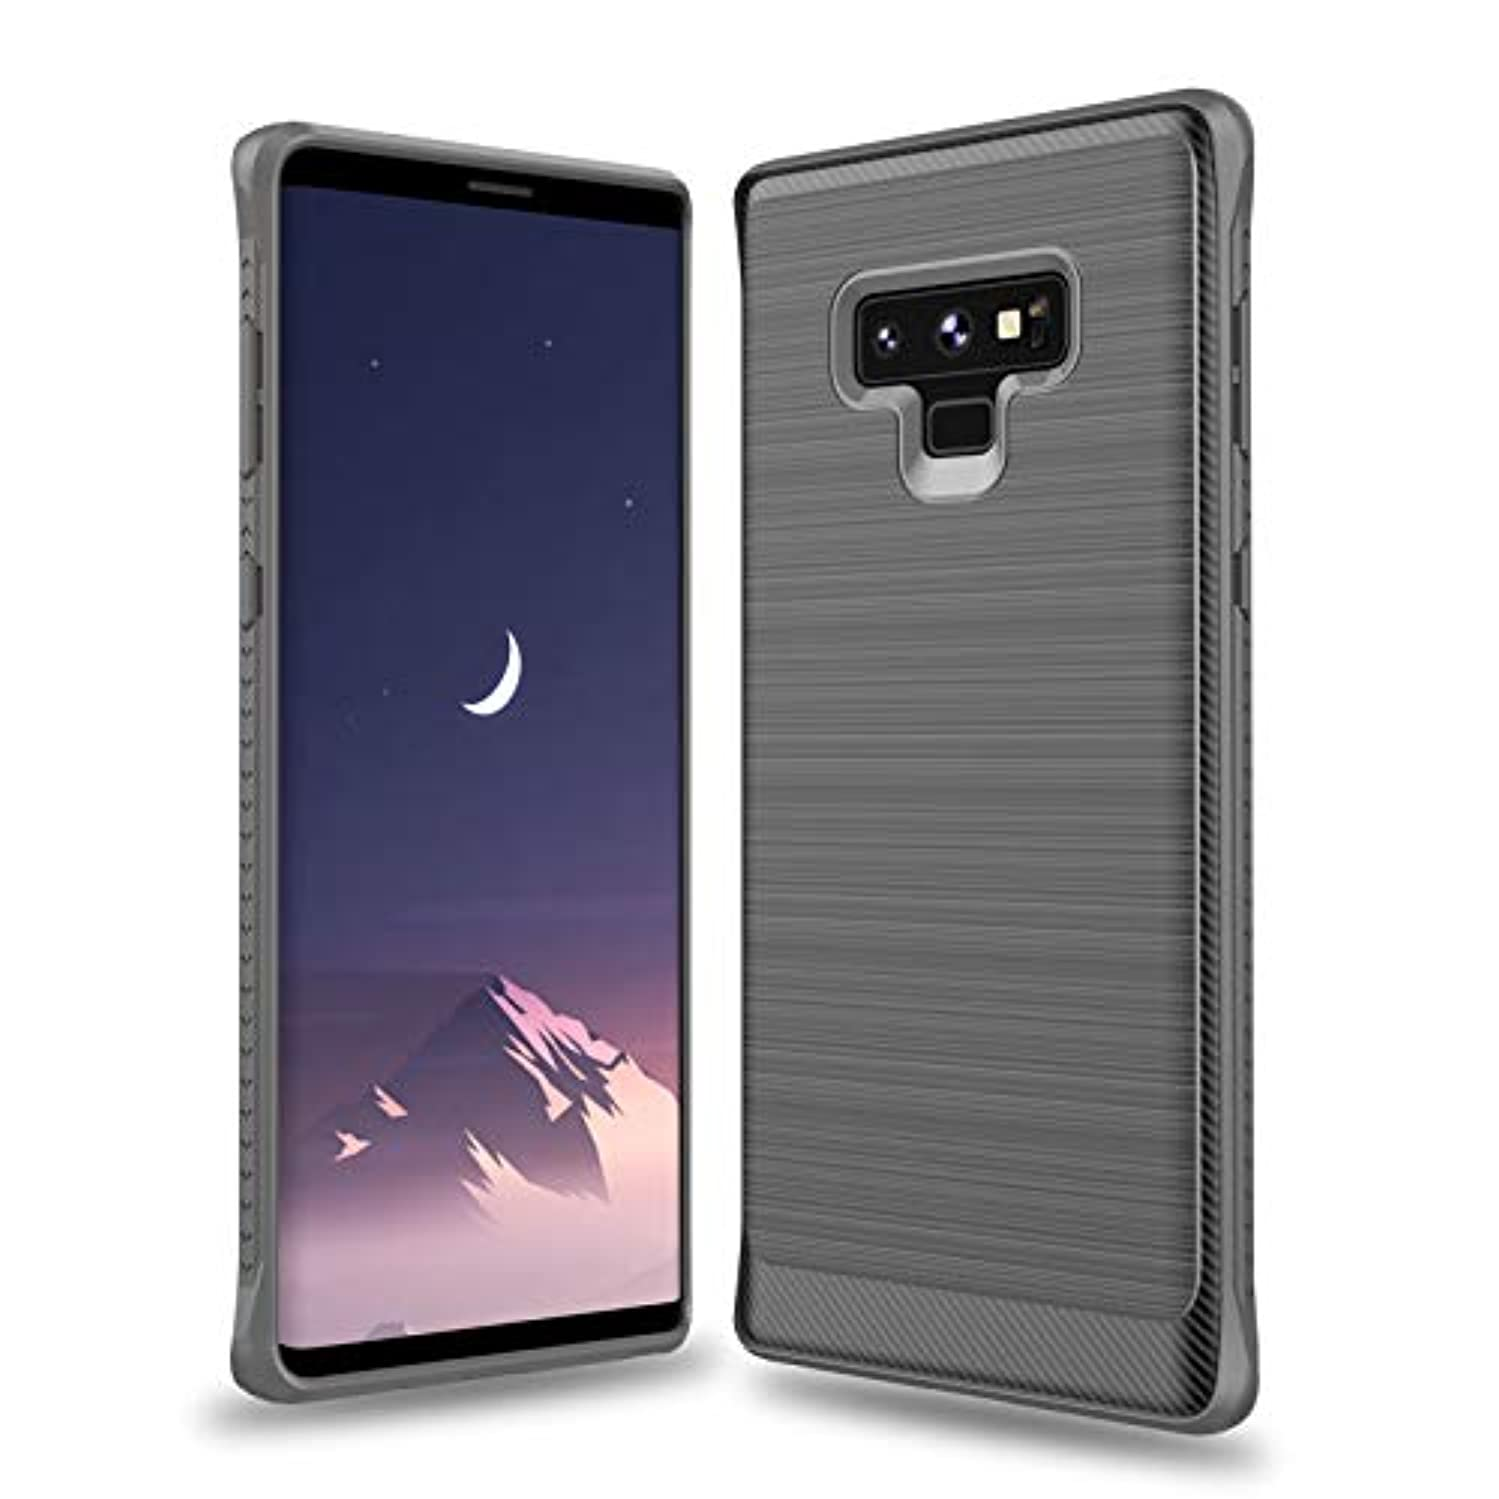 Galaxy Note 9 Case with Resilient Shock Absorption and Carbon Fiber Design for Samsung Galaxy Note 9 (Gray)